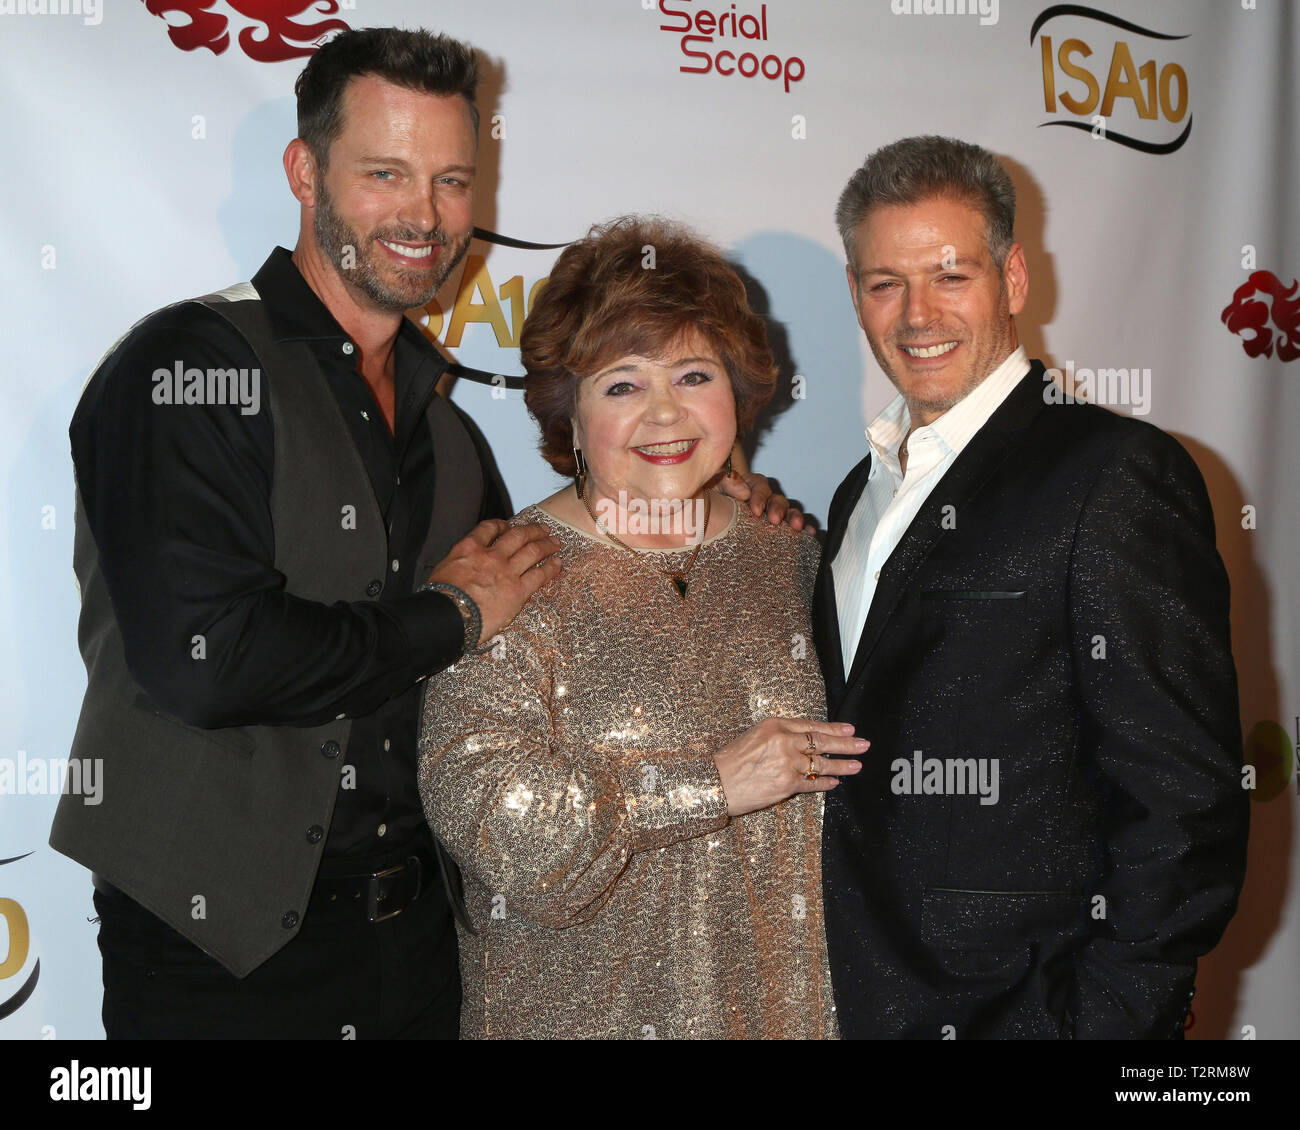 April 3, 2019 - Burbank, CA, USA - LOS ANGELES - APR 3:  Eric Martsolf, Patrika Darbo, Kevin Spirtas at the 10th Indie Series Awards at the Colony Theater on April 3, 2019 in Burbank, CA (Credit Image: © Kay Blake/ZUMA Wire) - Stock Image